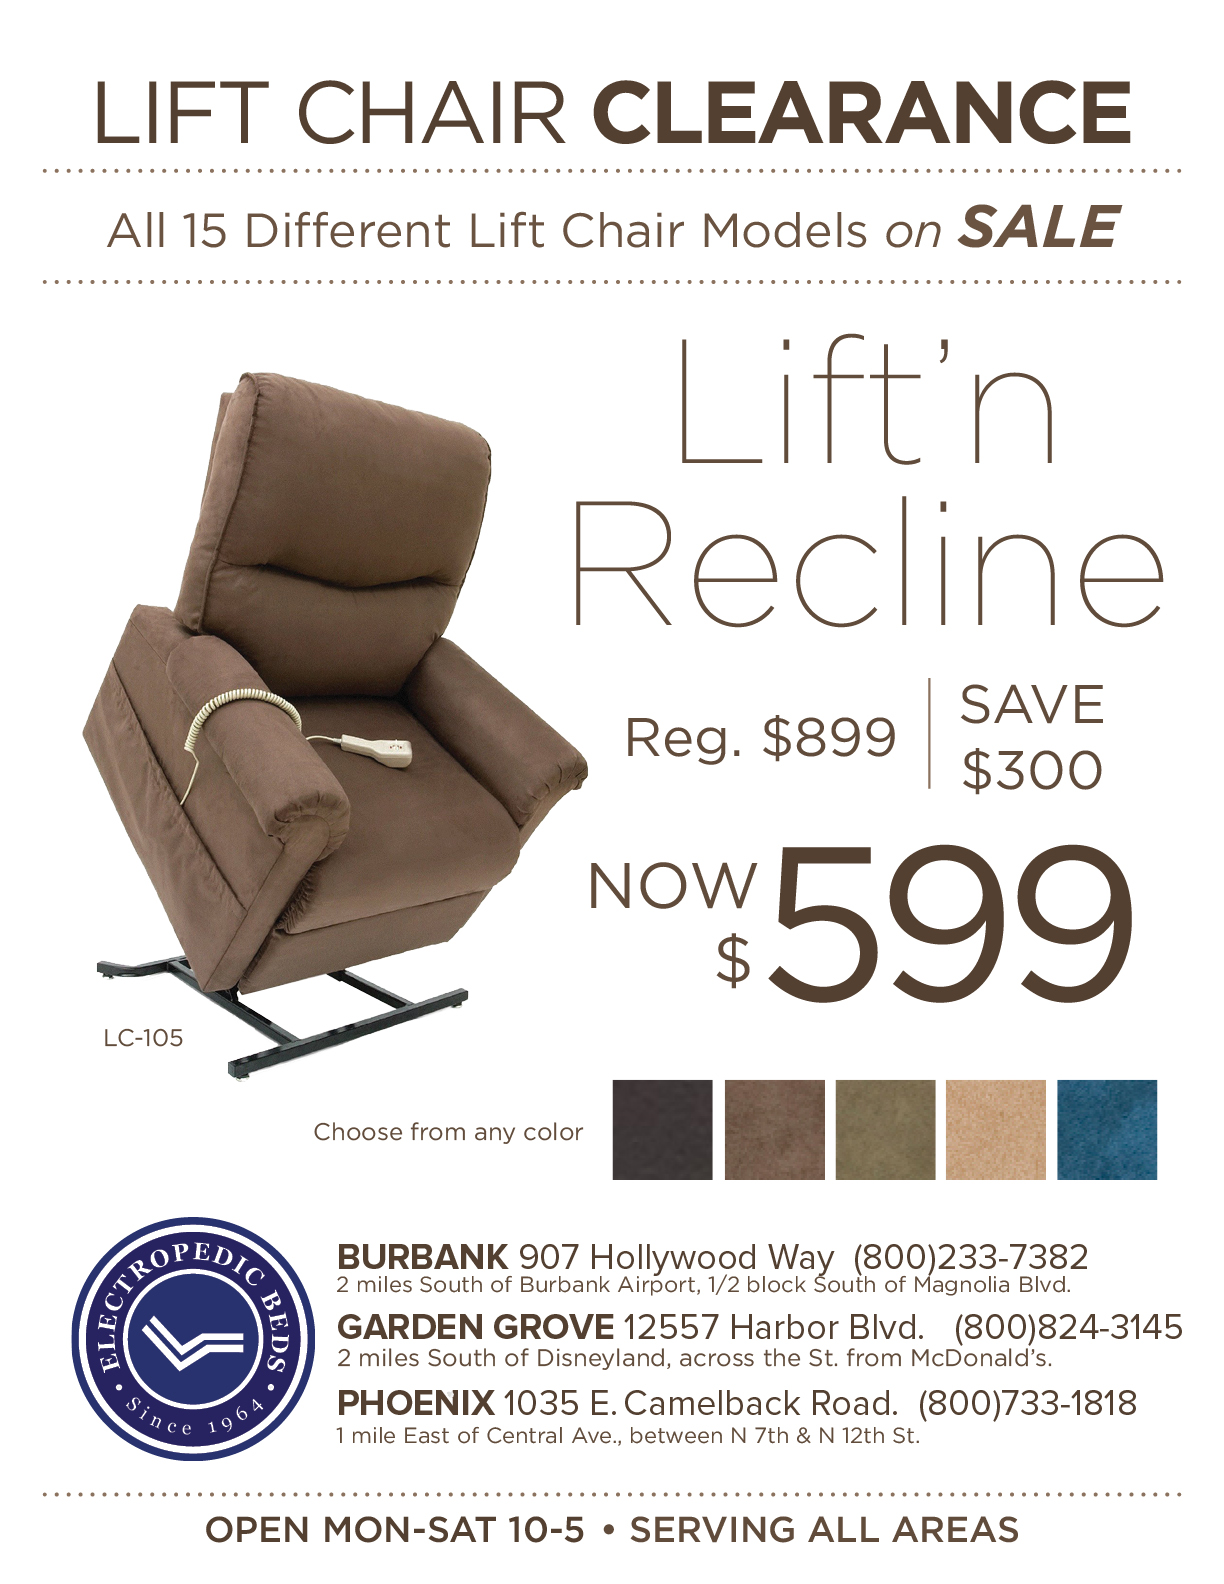 los angeles lift chair sale price cost  sc 1 st  AAMCARE & Phoenix Electric Power Golden Technologies LiftChairs maxicomfort islam-shia.org